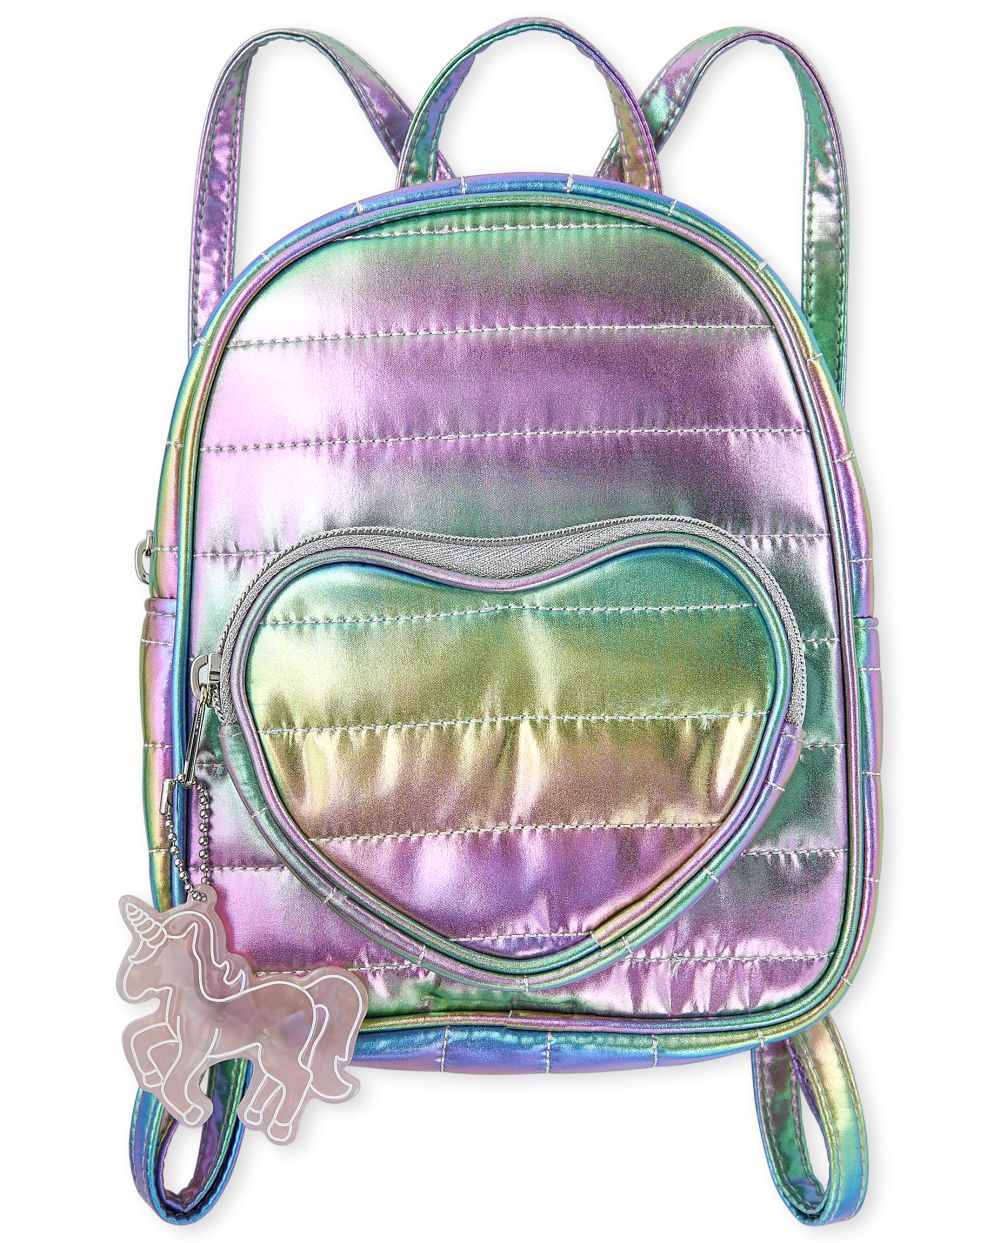 Girls Metallic Quilted Heart Mini Backpack - Multi